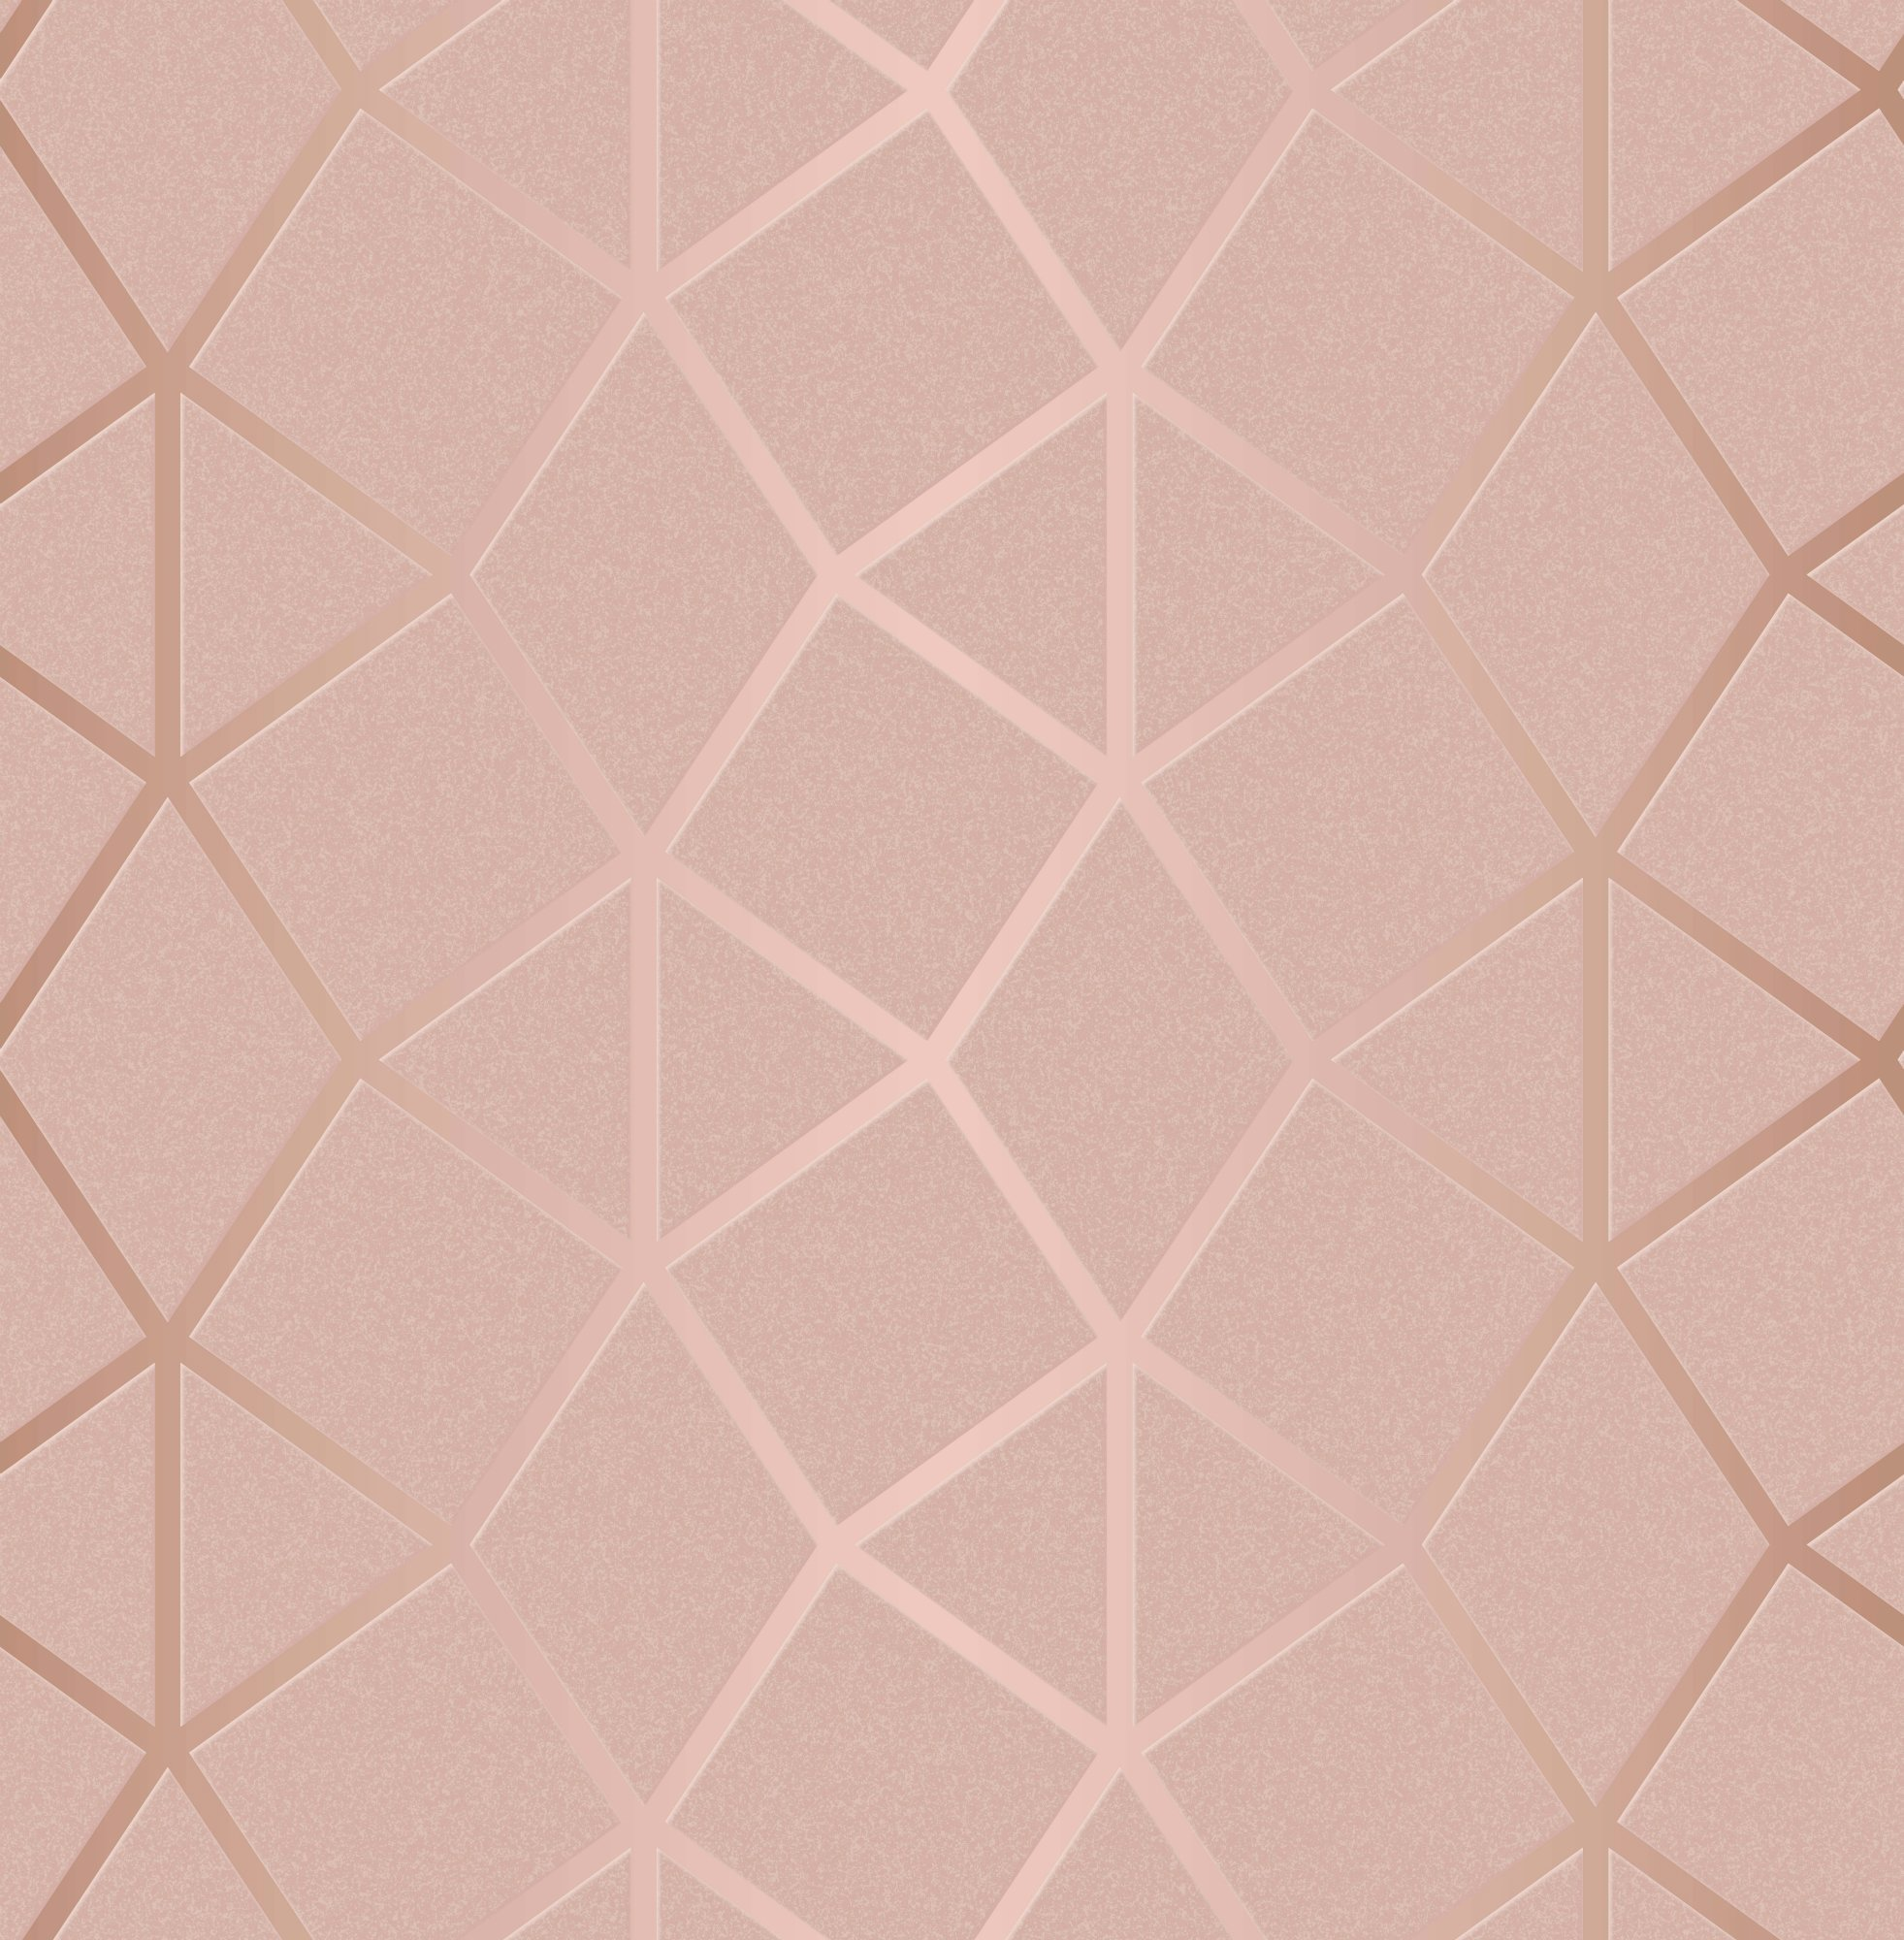 Luxe Hexagon Wallpaper